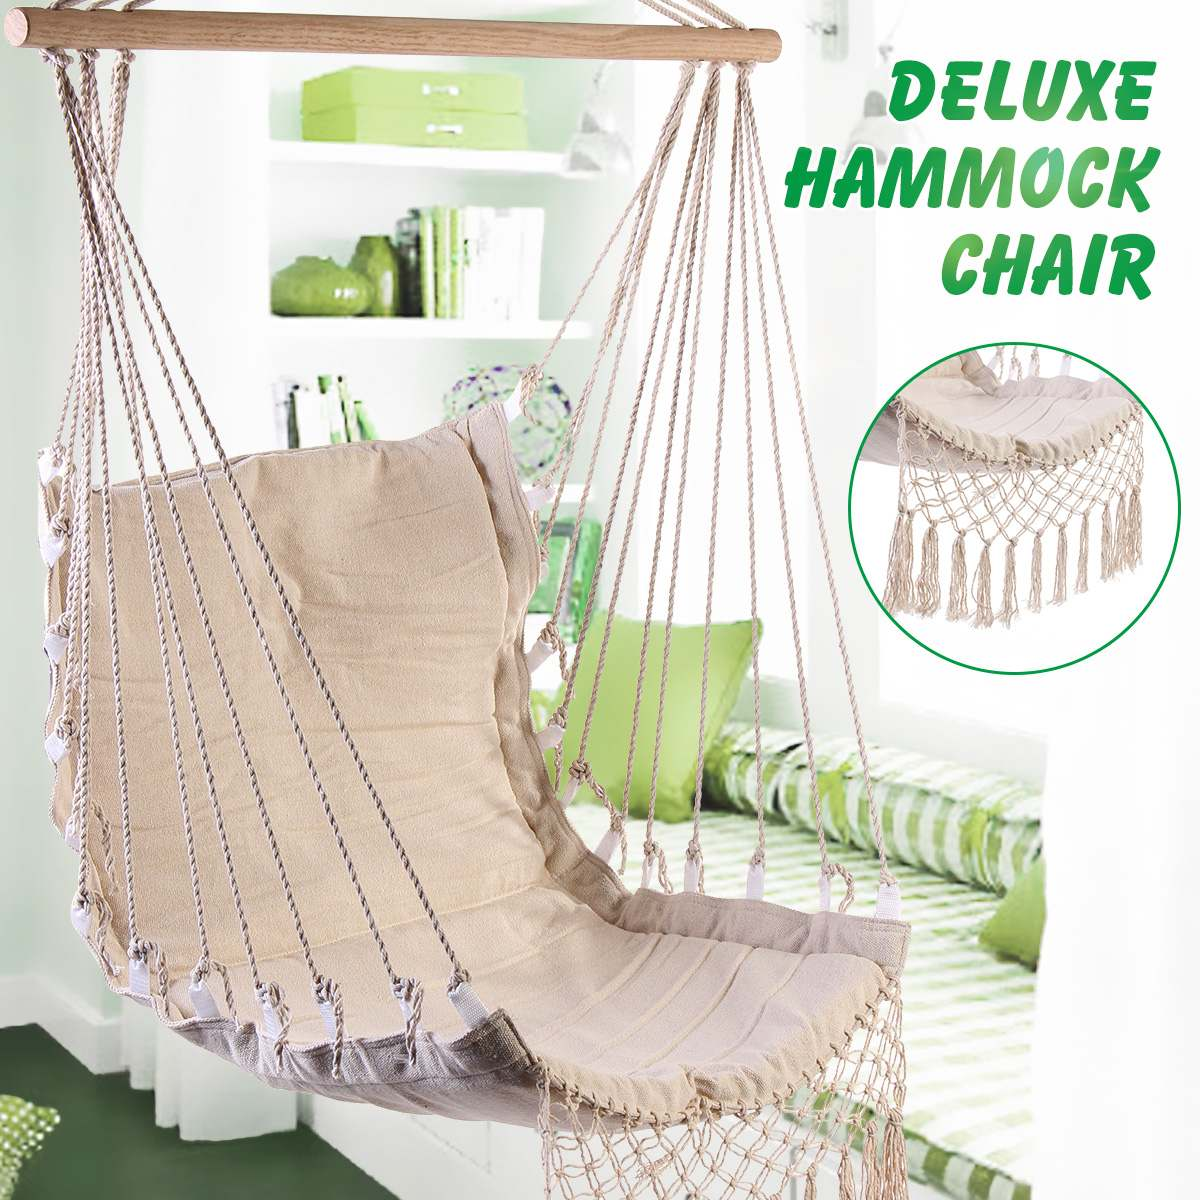 Nordic Style Home Garden Hanging Hammock Chair Outdoor Indoor Dormitory Swing Hanging Chair With Wooden Rod